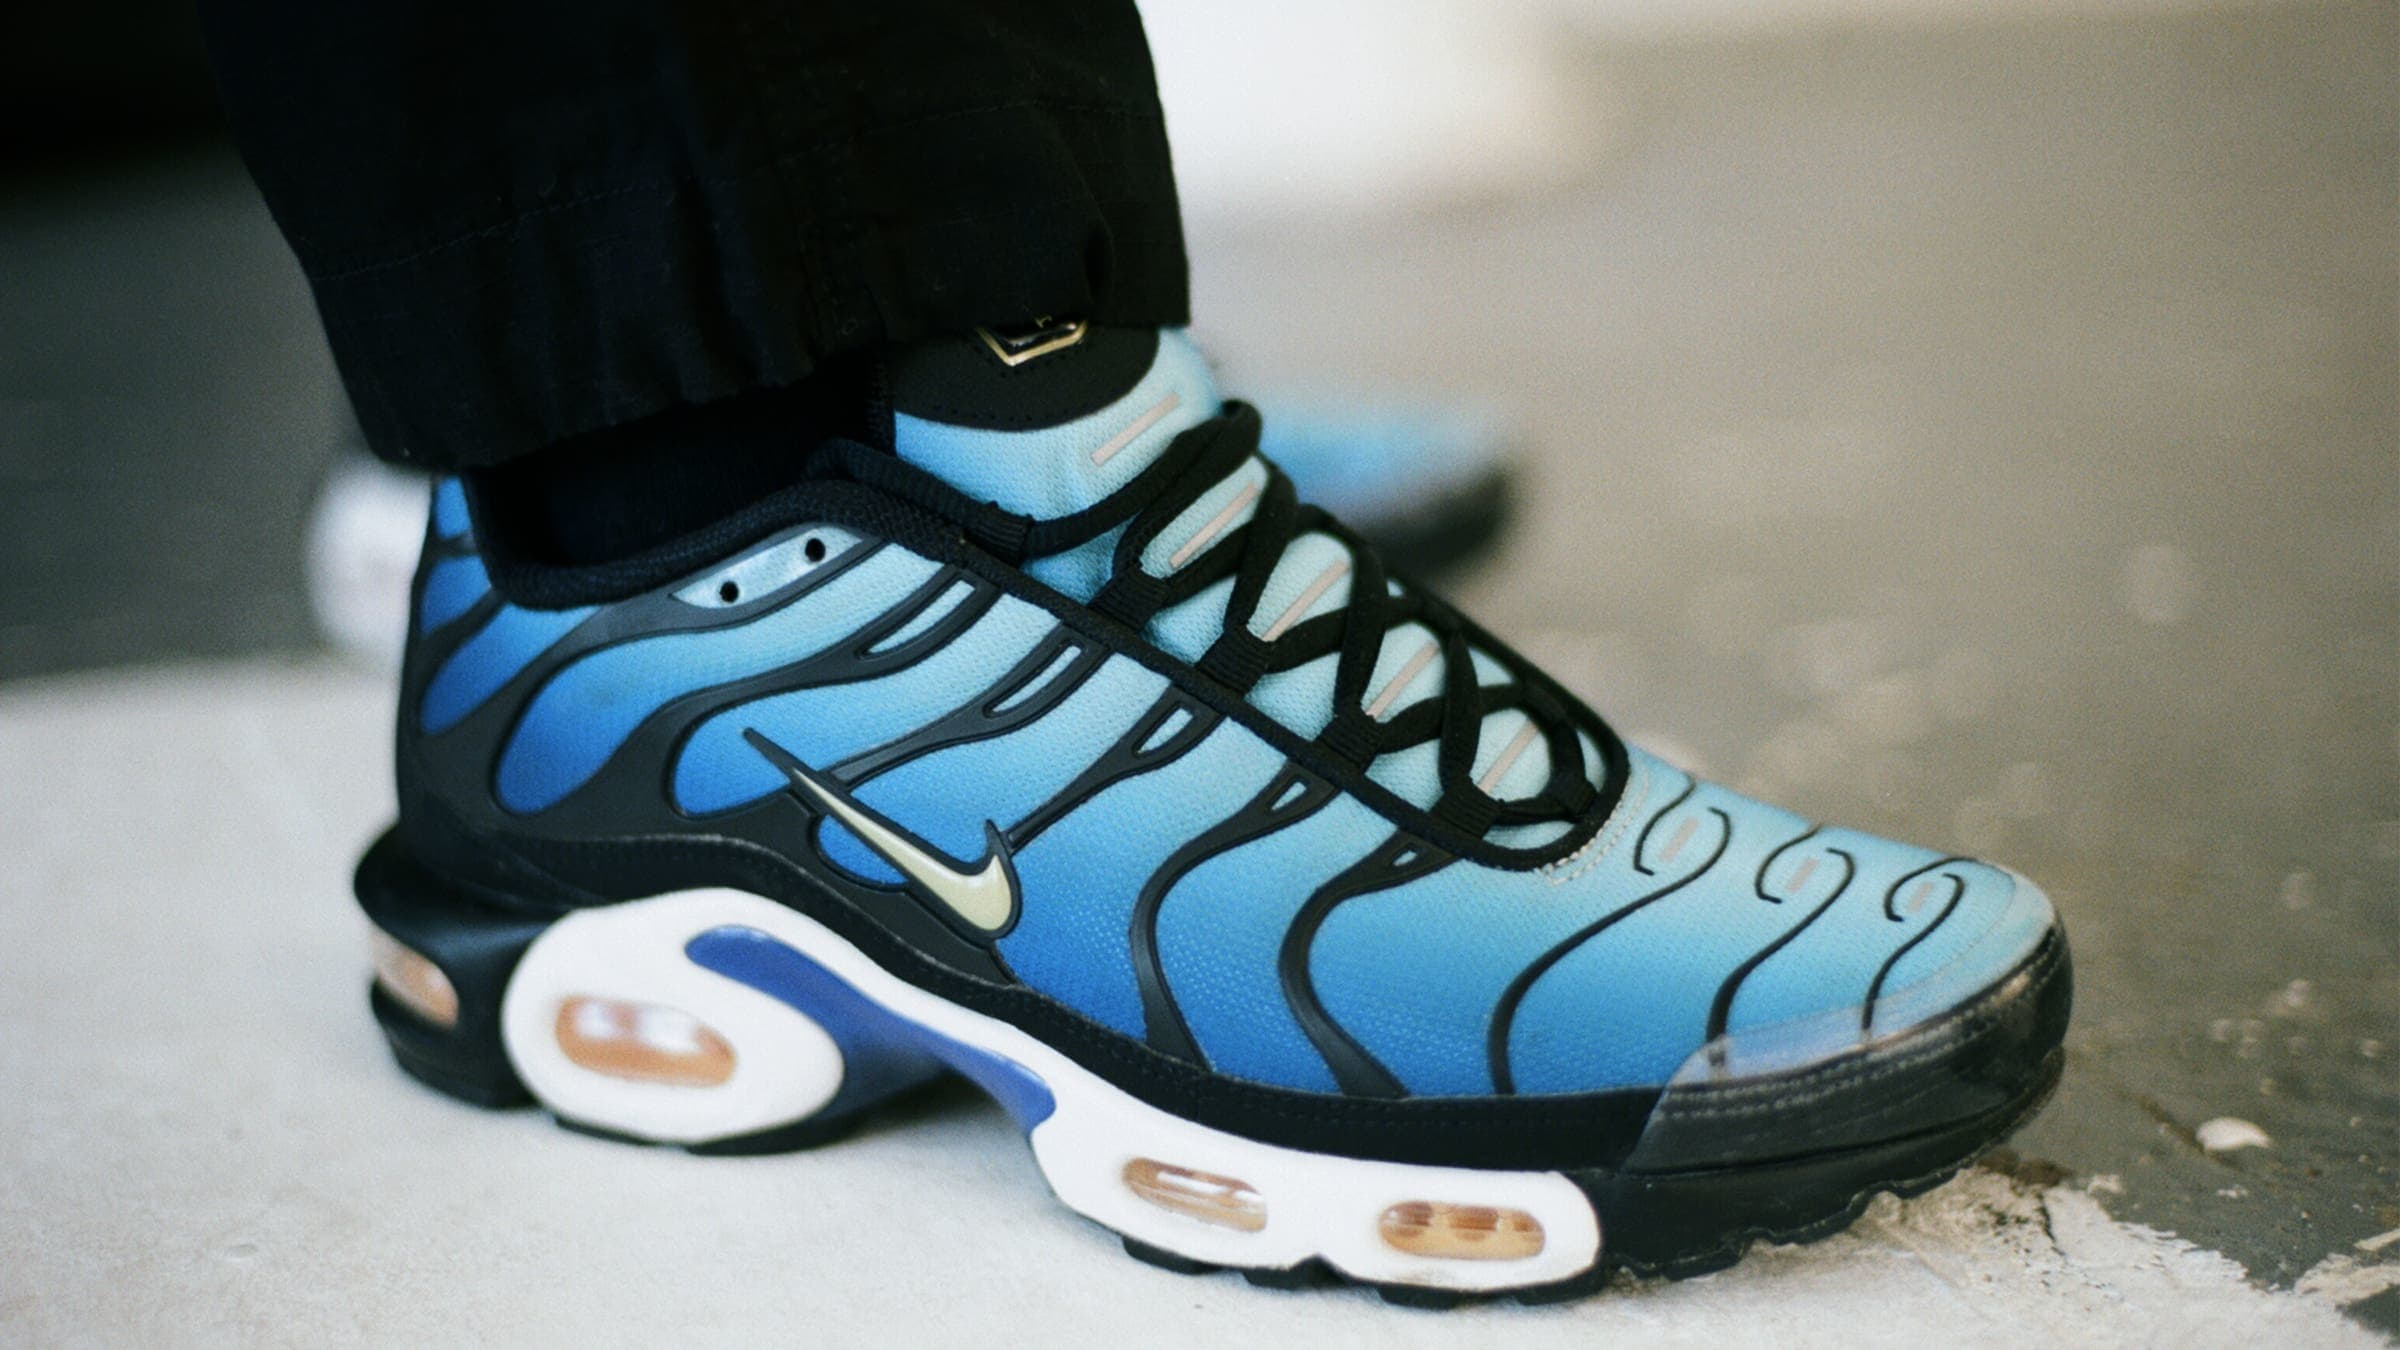 d2f766c1a5 Nike celebrates 20 years of TN by re-issuing the OG colourways of the  iconic Nike Air Max Plus (TN) - available now on END. Launches